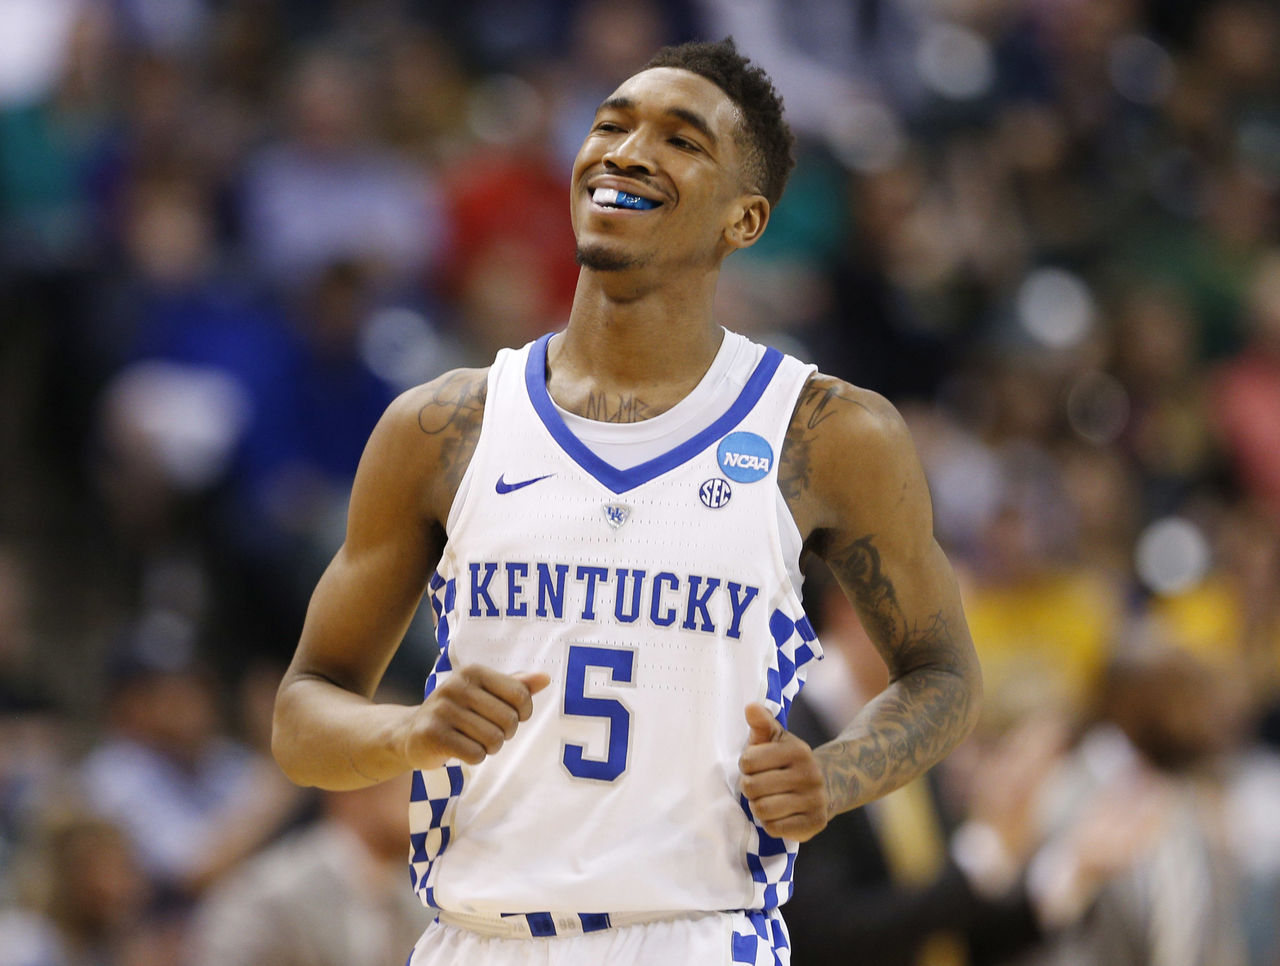 Cropped 2017 03 18t024657z 480797401 nocid rtrmadp 3 ncaa basketball ncaa tournament first round kentucky vs northern kentucky